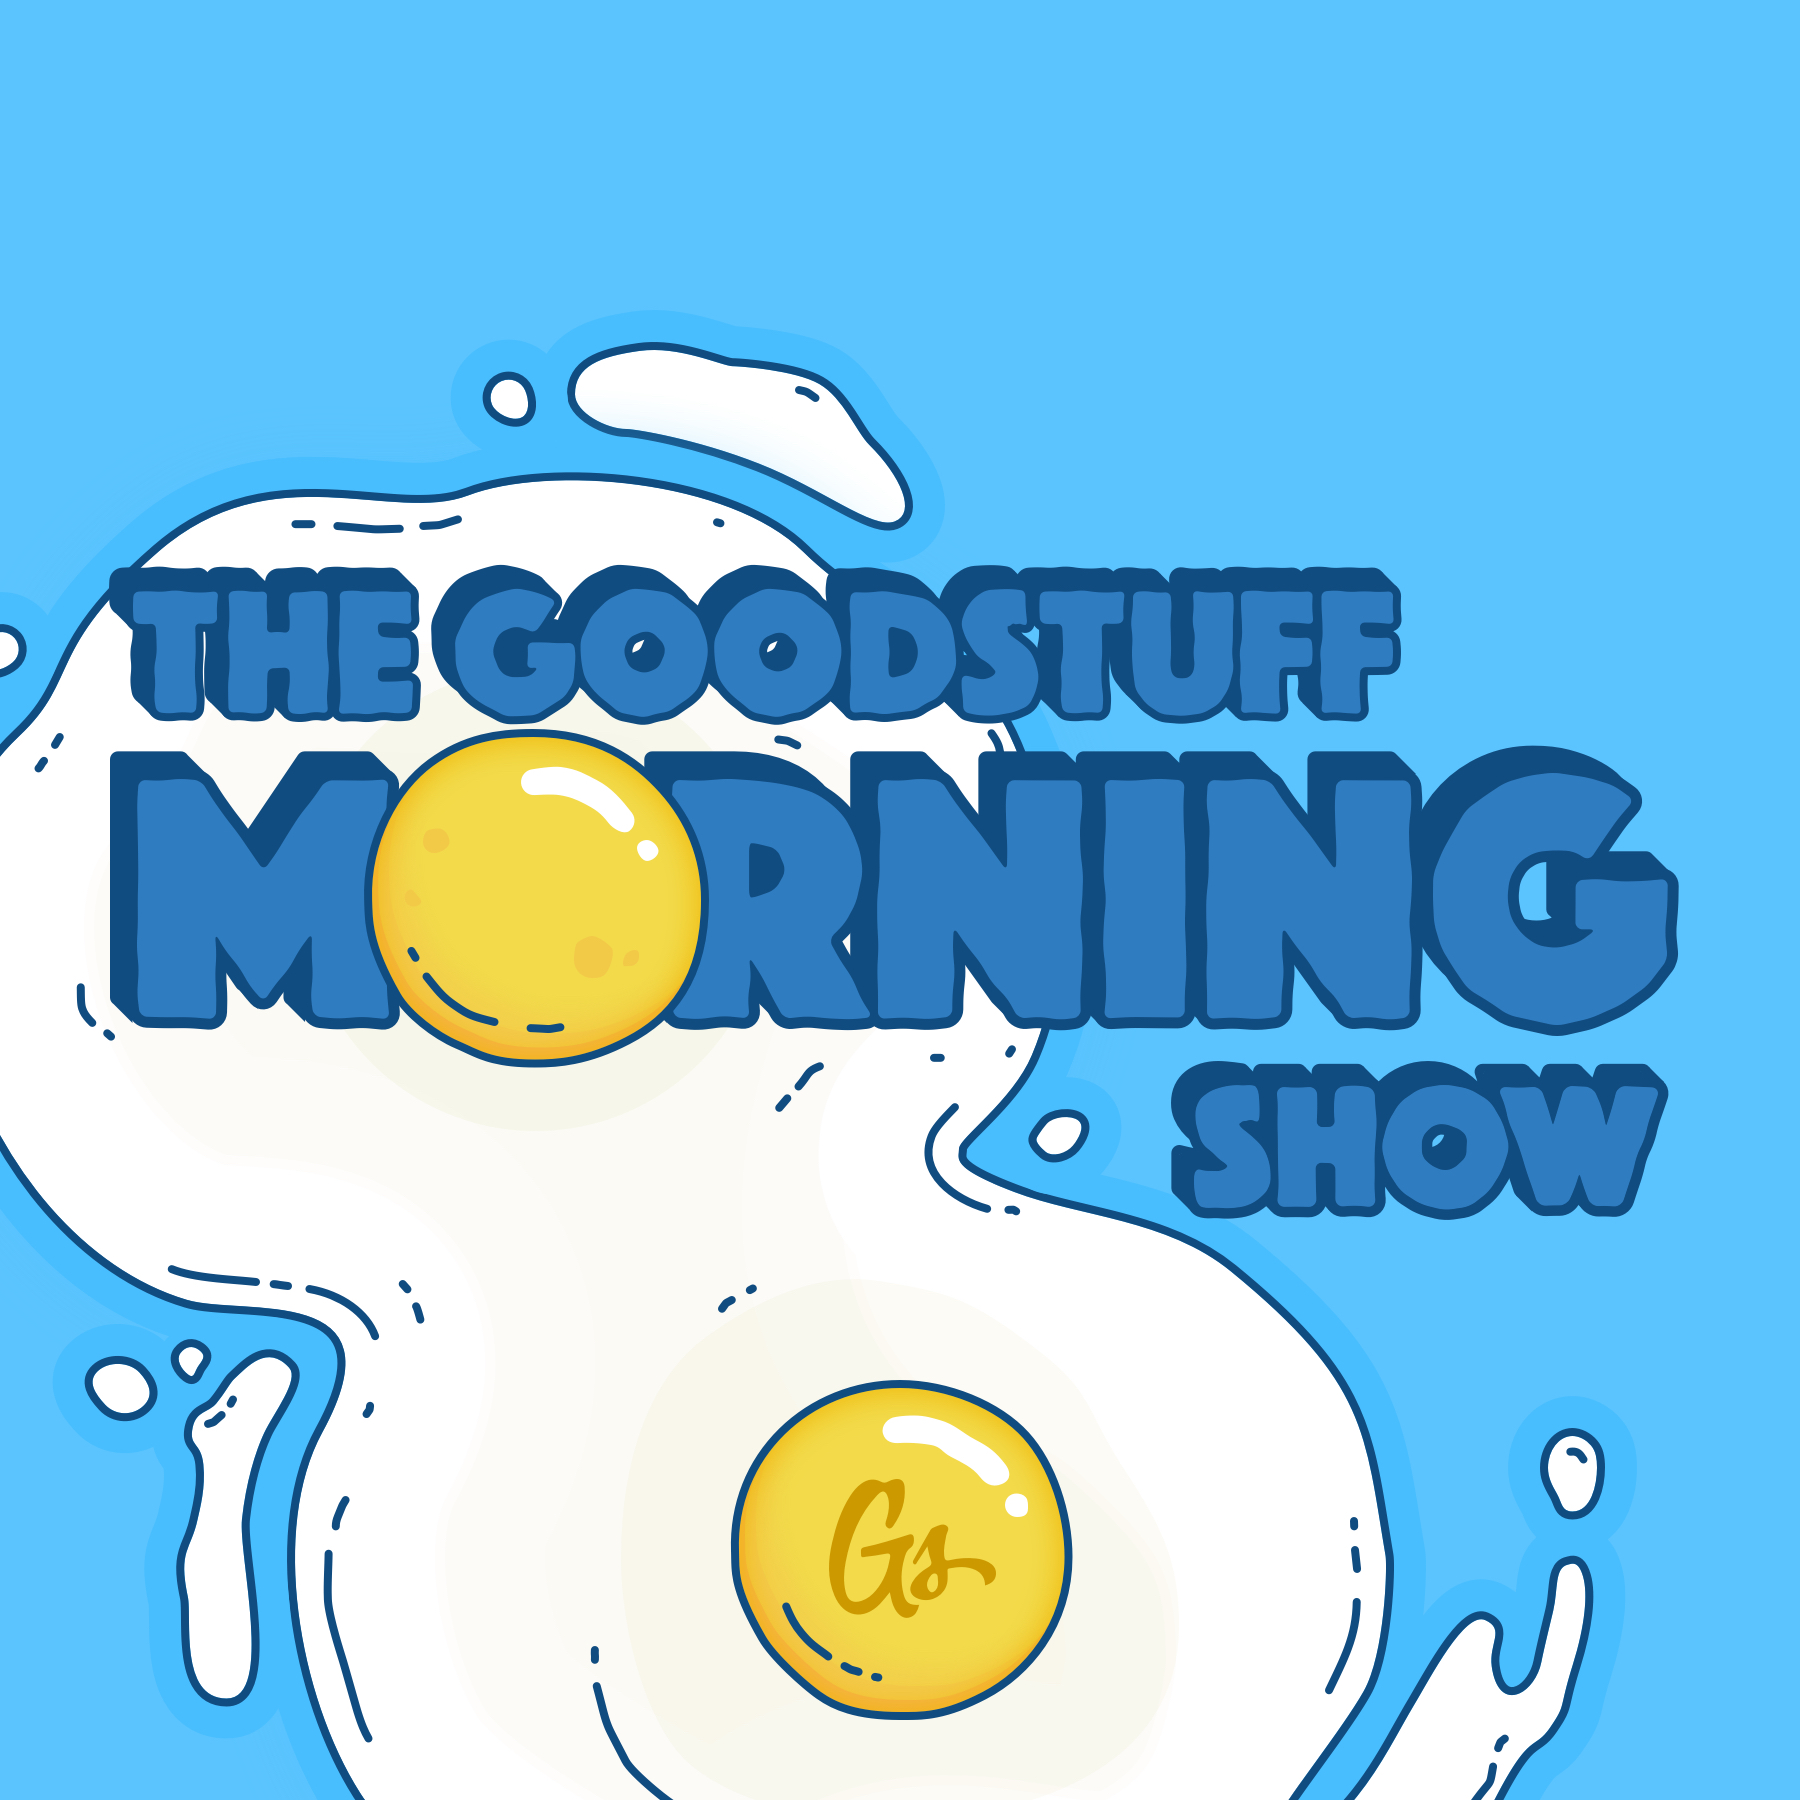 Morningshow artwork